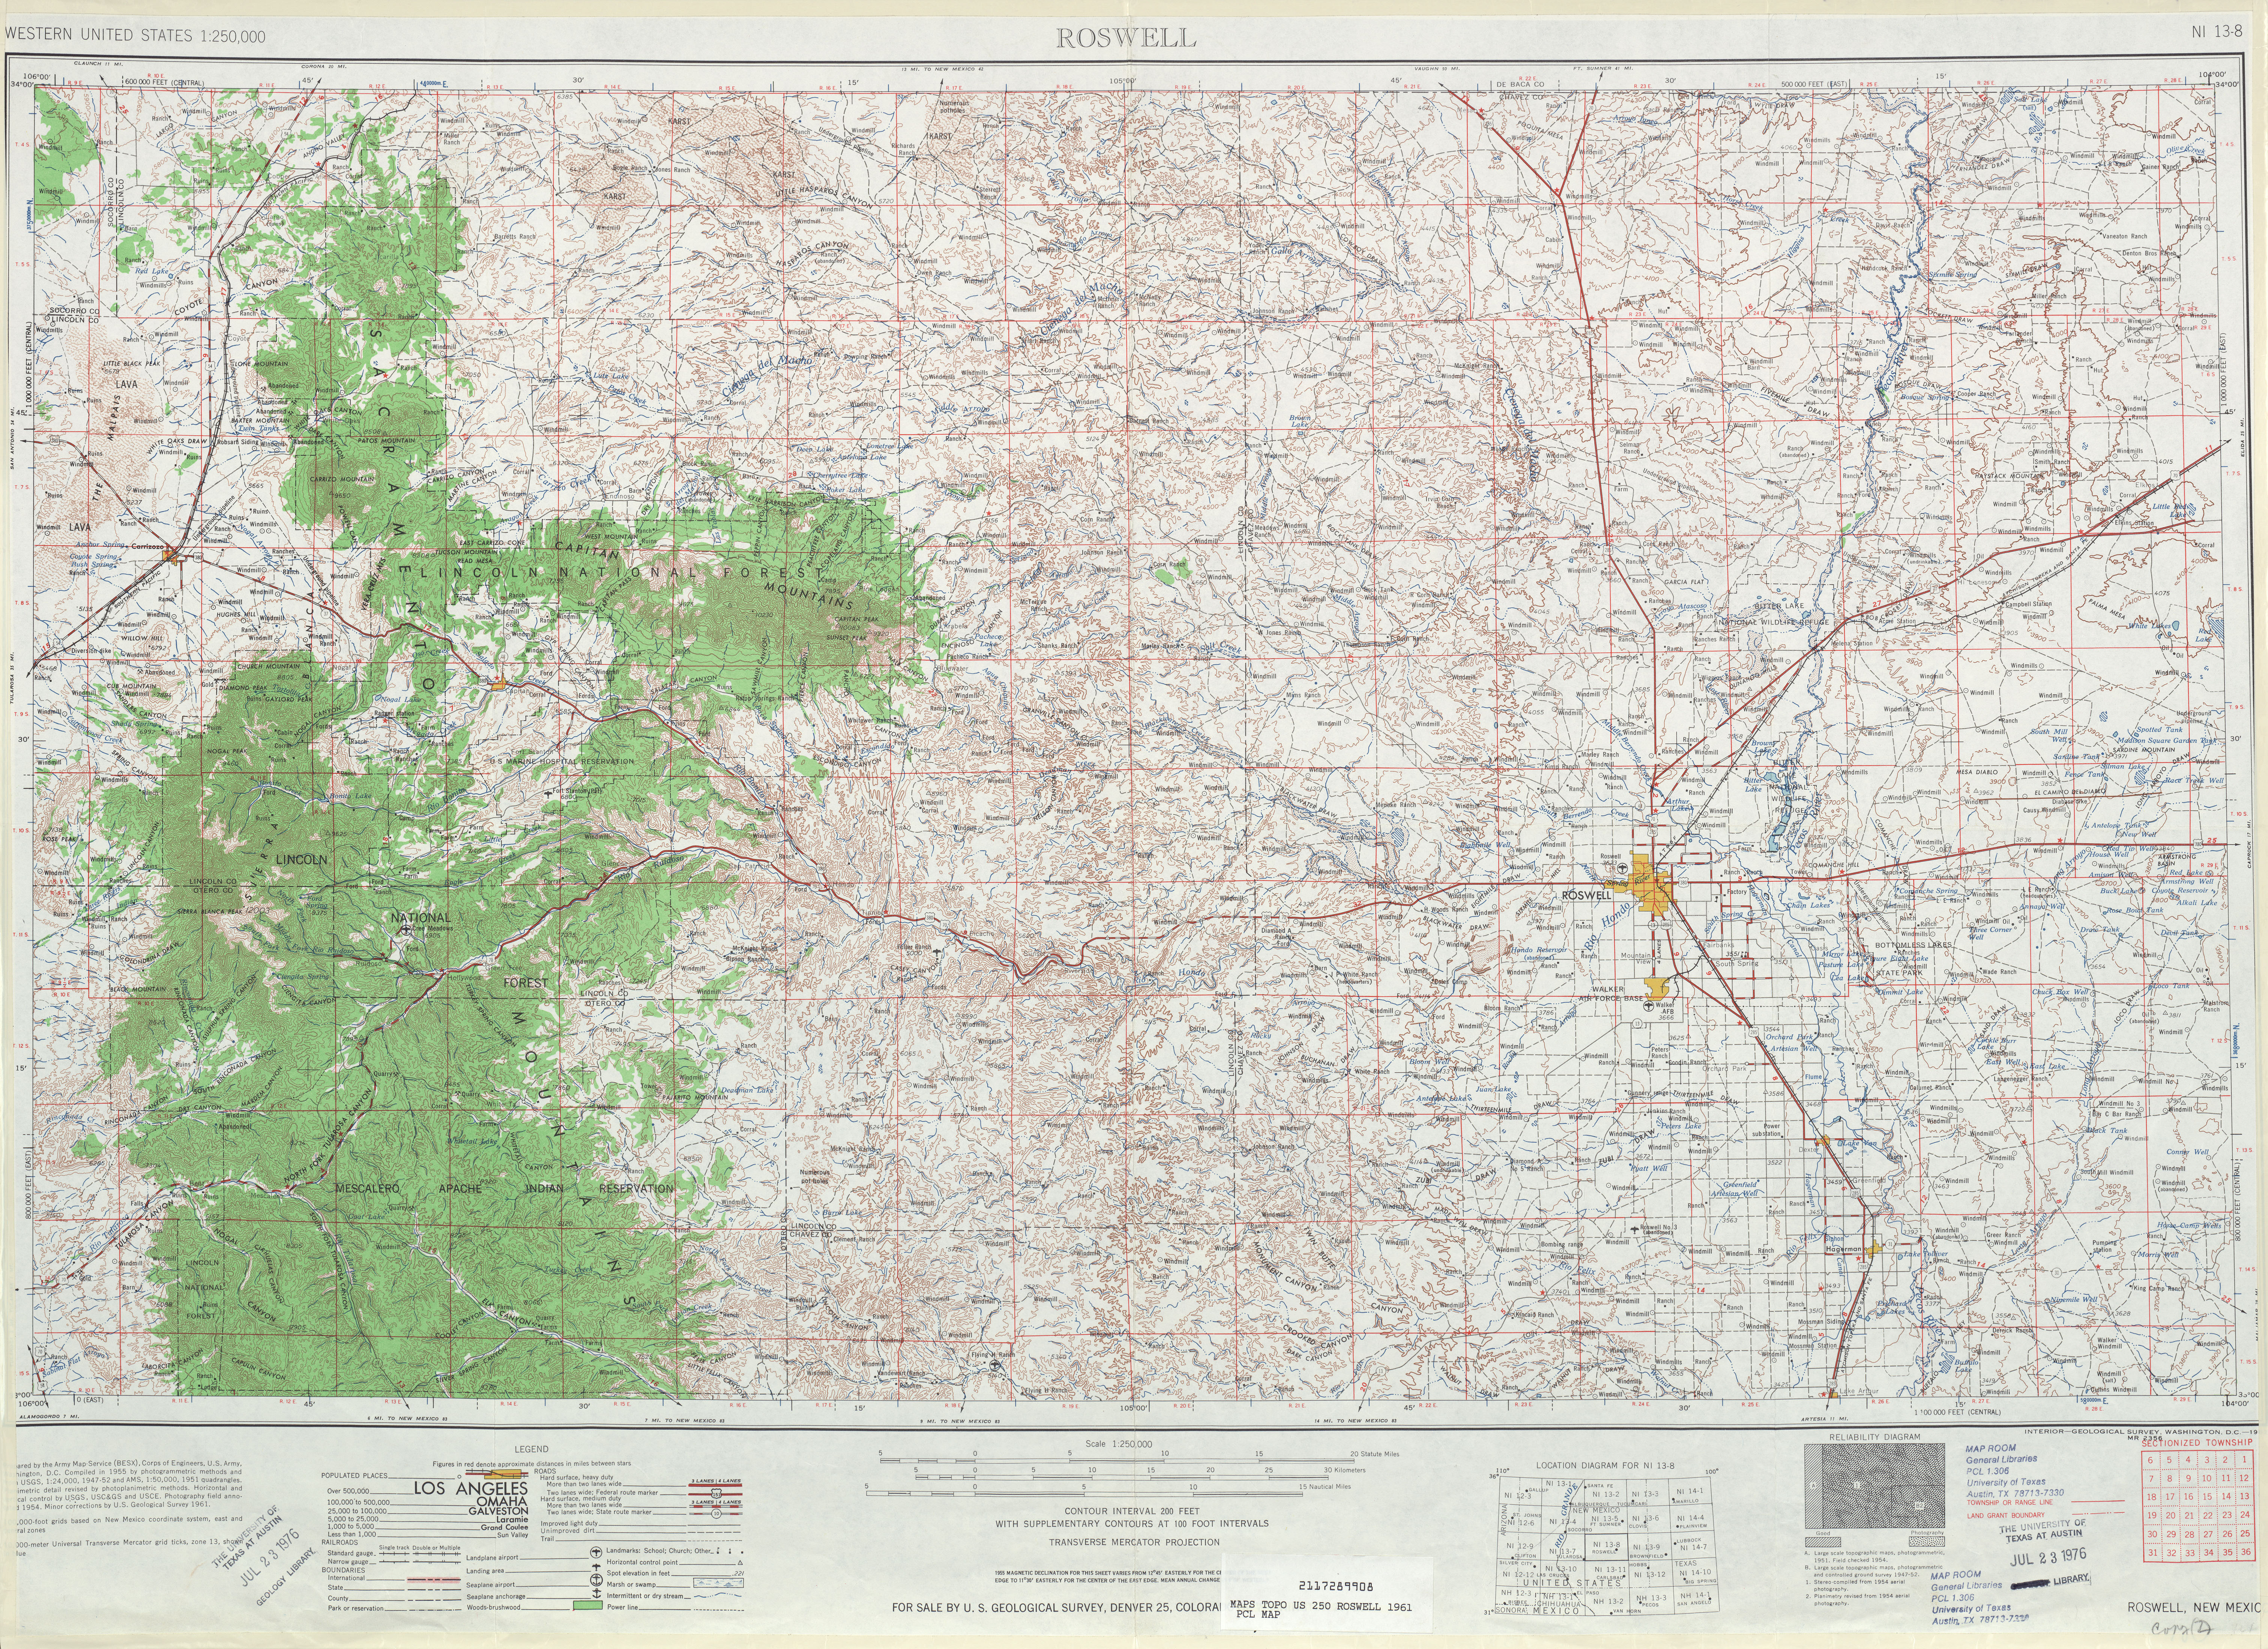 Roswell Topographic Map Sheet, United States 1961